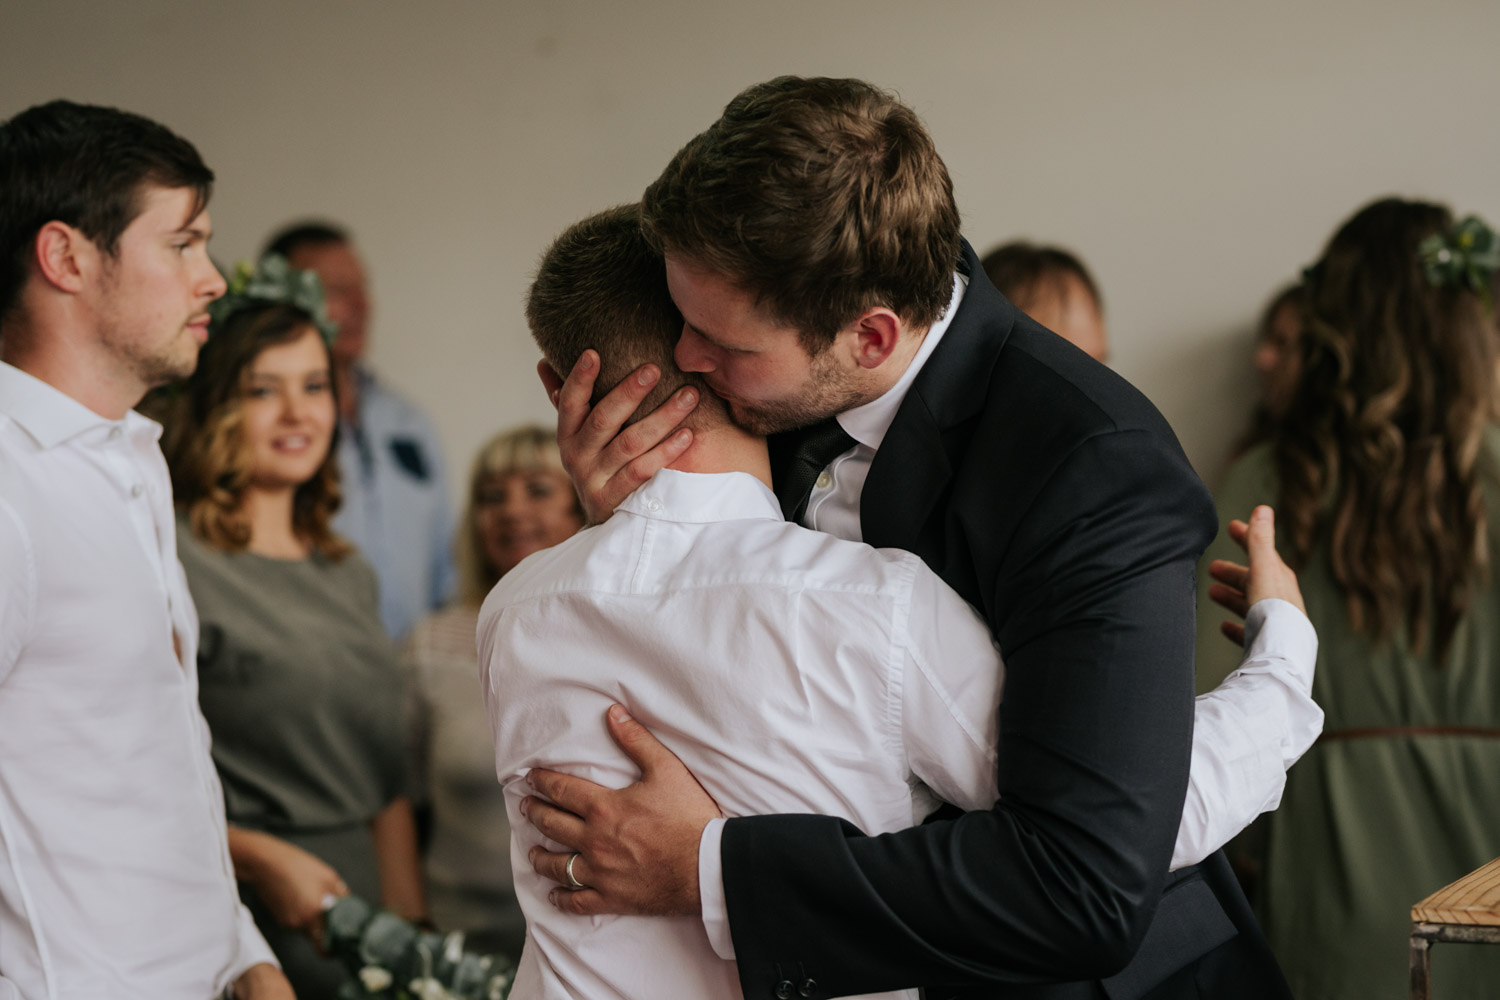 Emotional Raw Real Photo Of Groom Hugging Brother After Wedding Ceremony